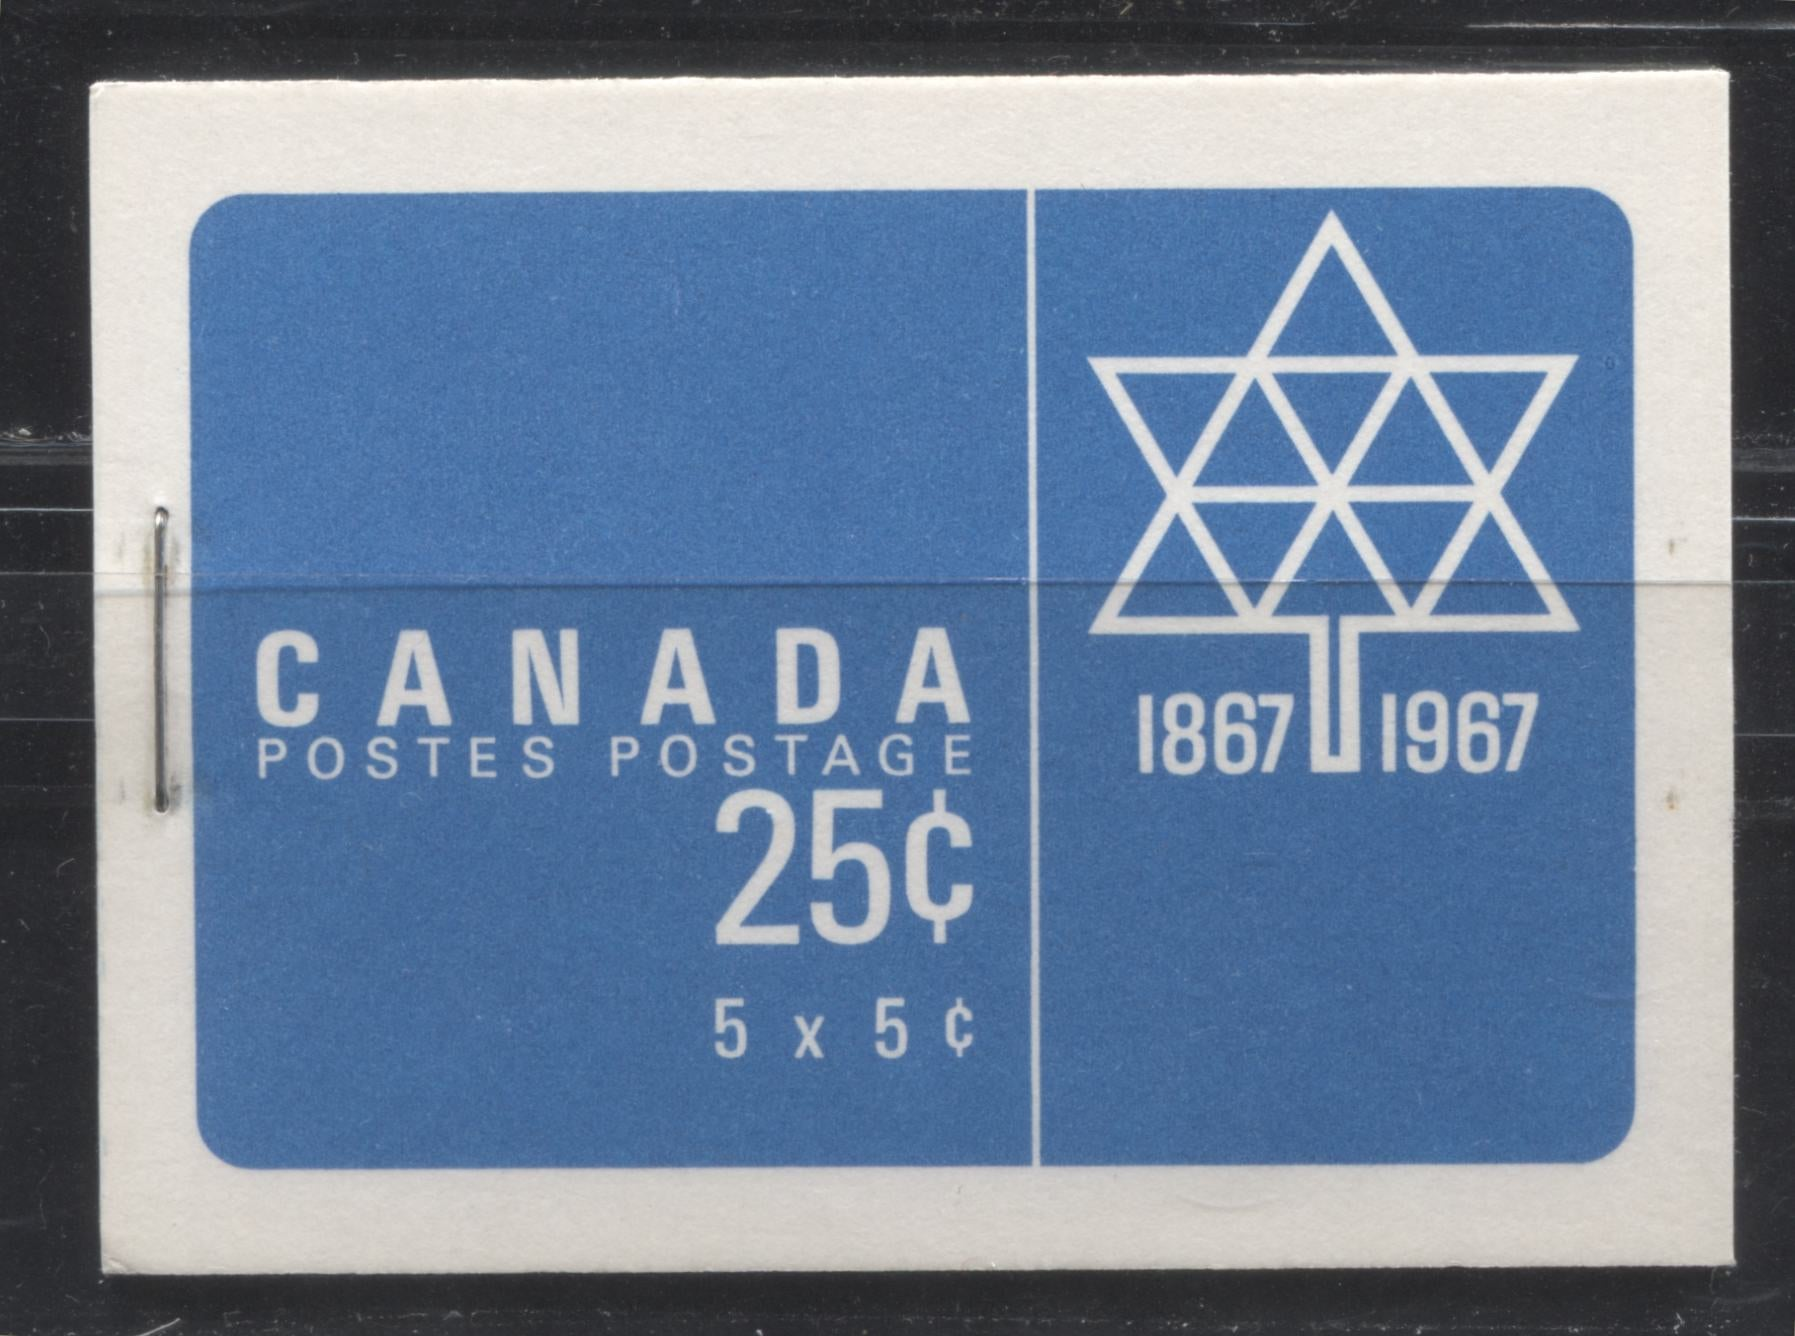 Canada McCann #BK52g (Unitrade #BK52e) 1962-1967 Cameo Issue, a VFNH Booklet Containing A 5c Pane of 5 + Label, Centennial Cover LF-FL Grayish White Front Cover, DF-FL Grayish White Back Cover, DF Pane, HF Interleaf